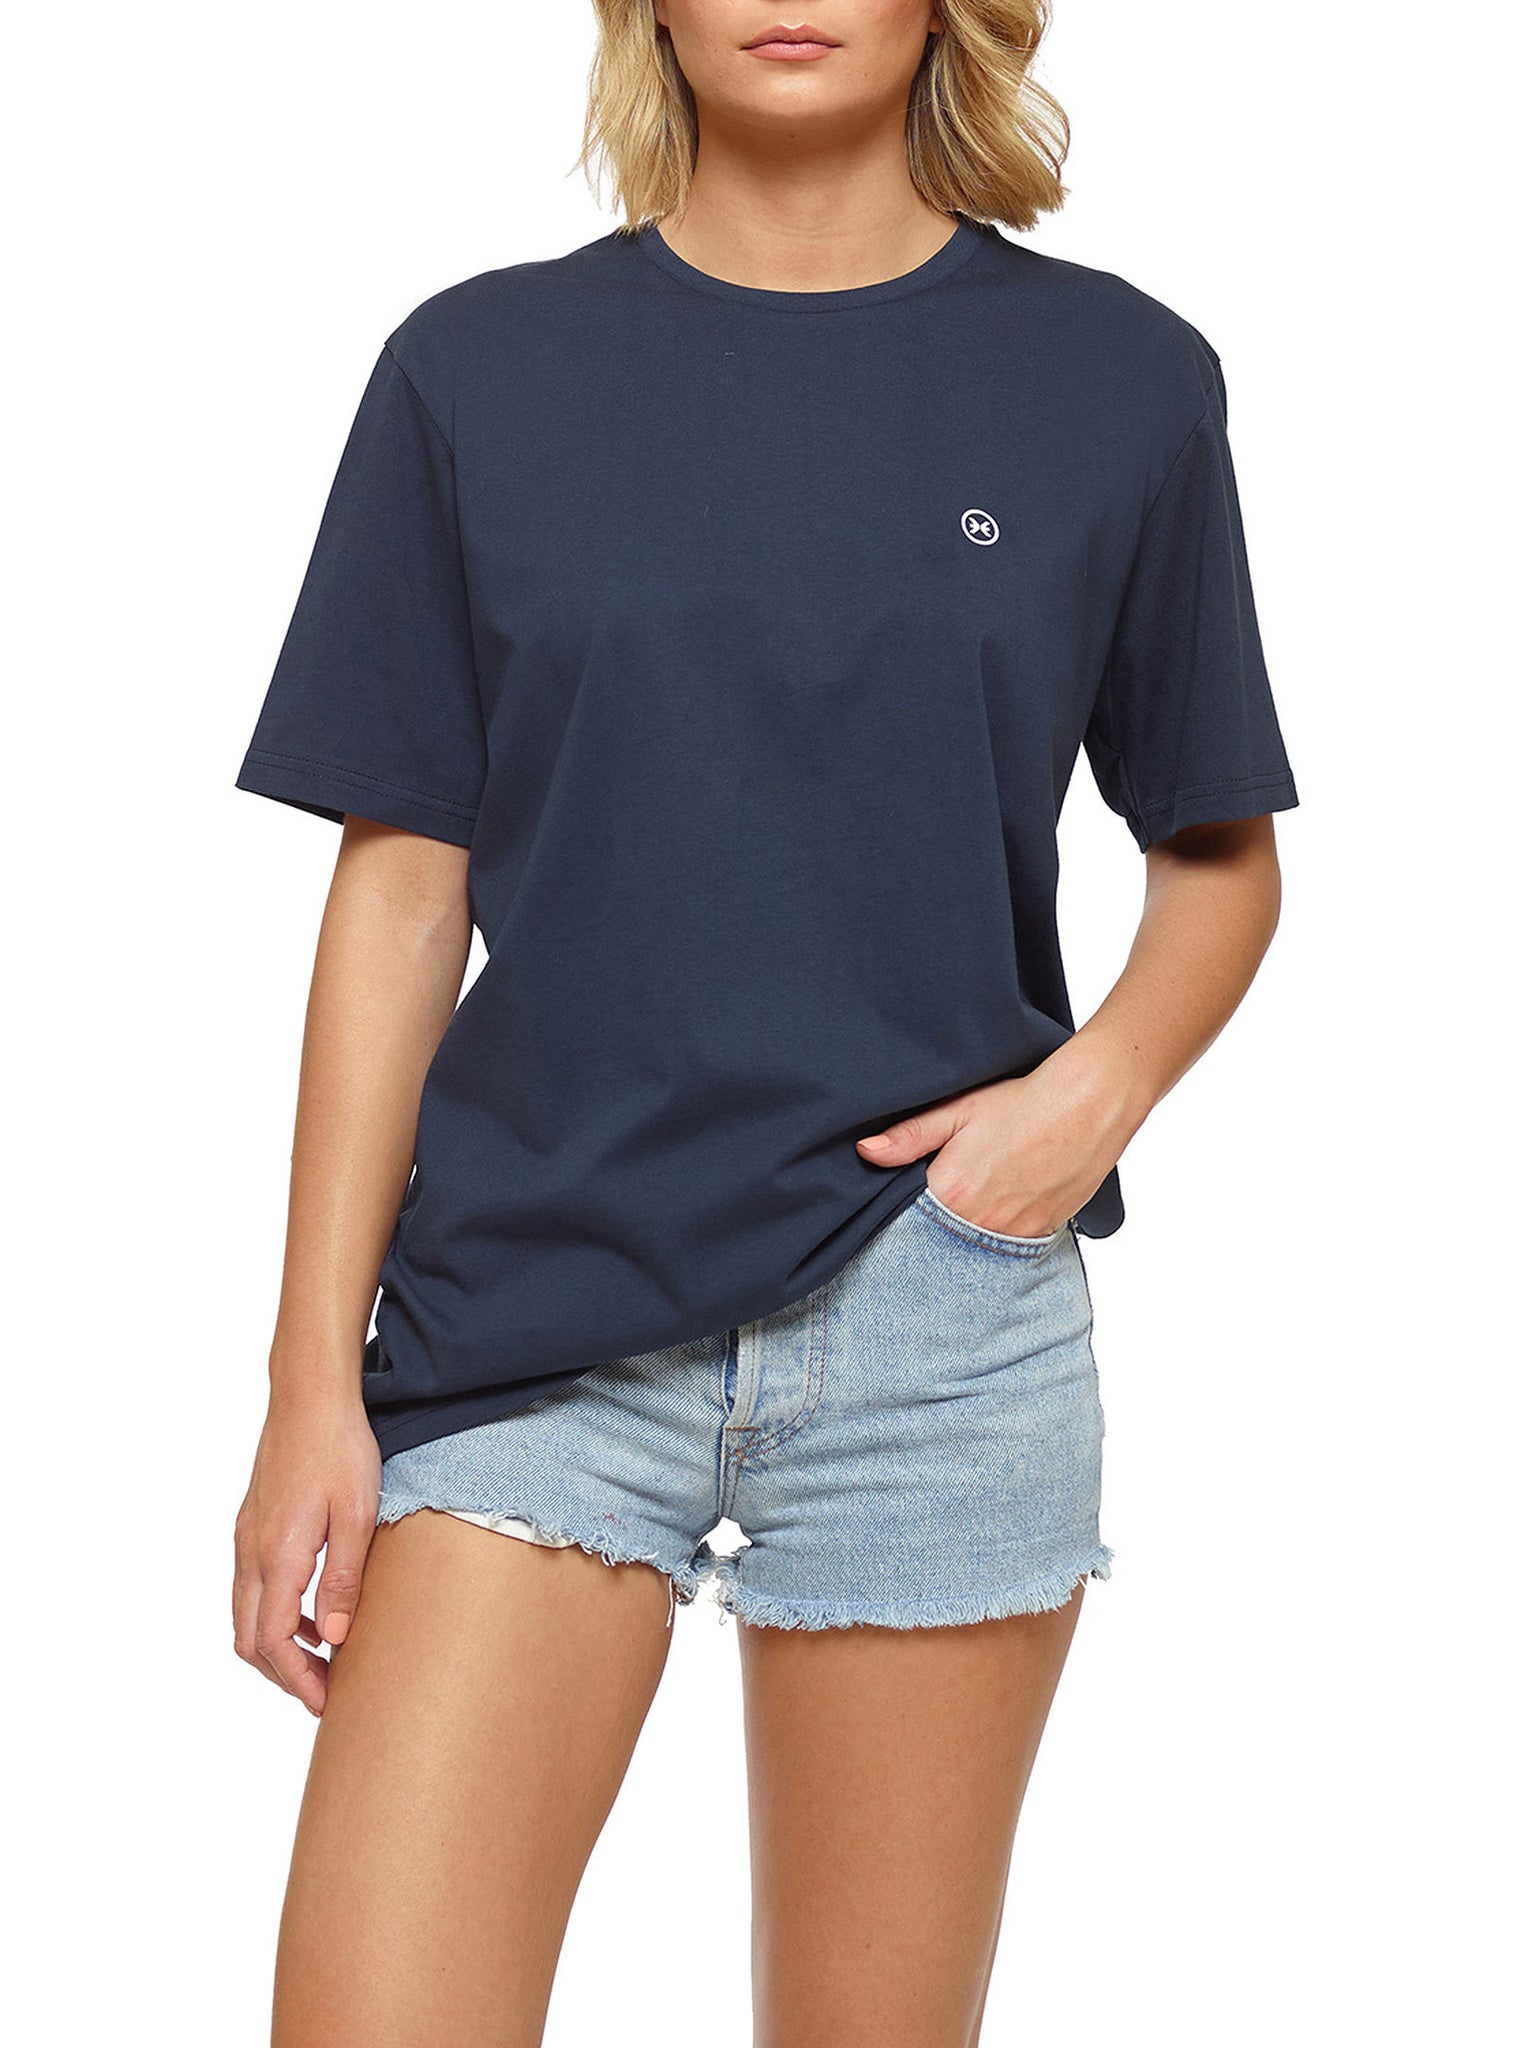 Embroidery Tee Navy Blue